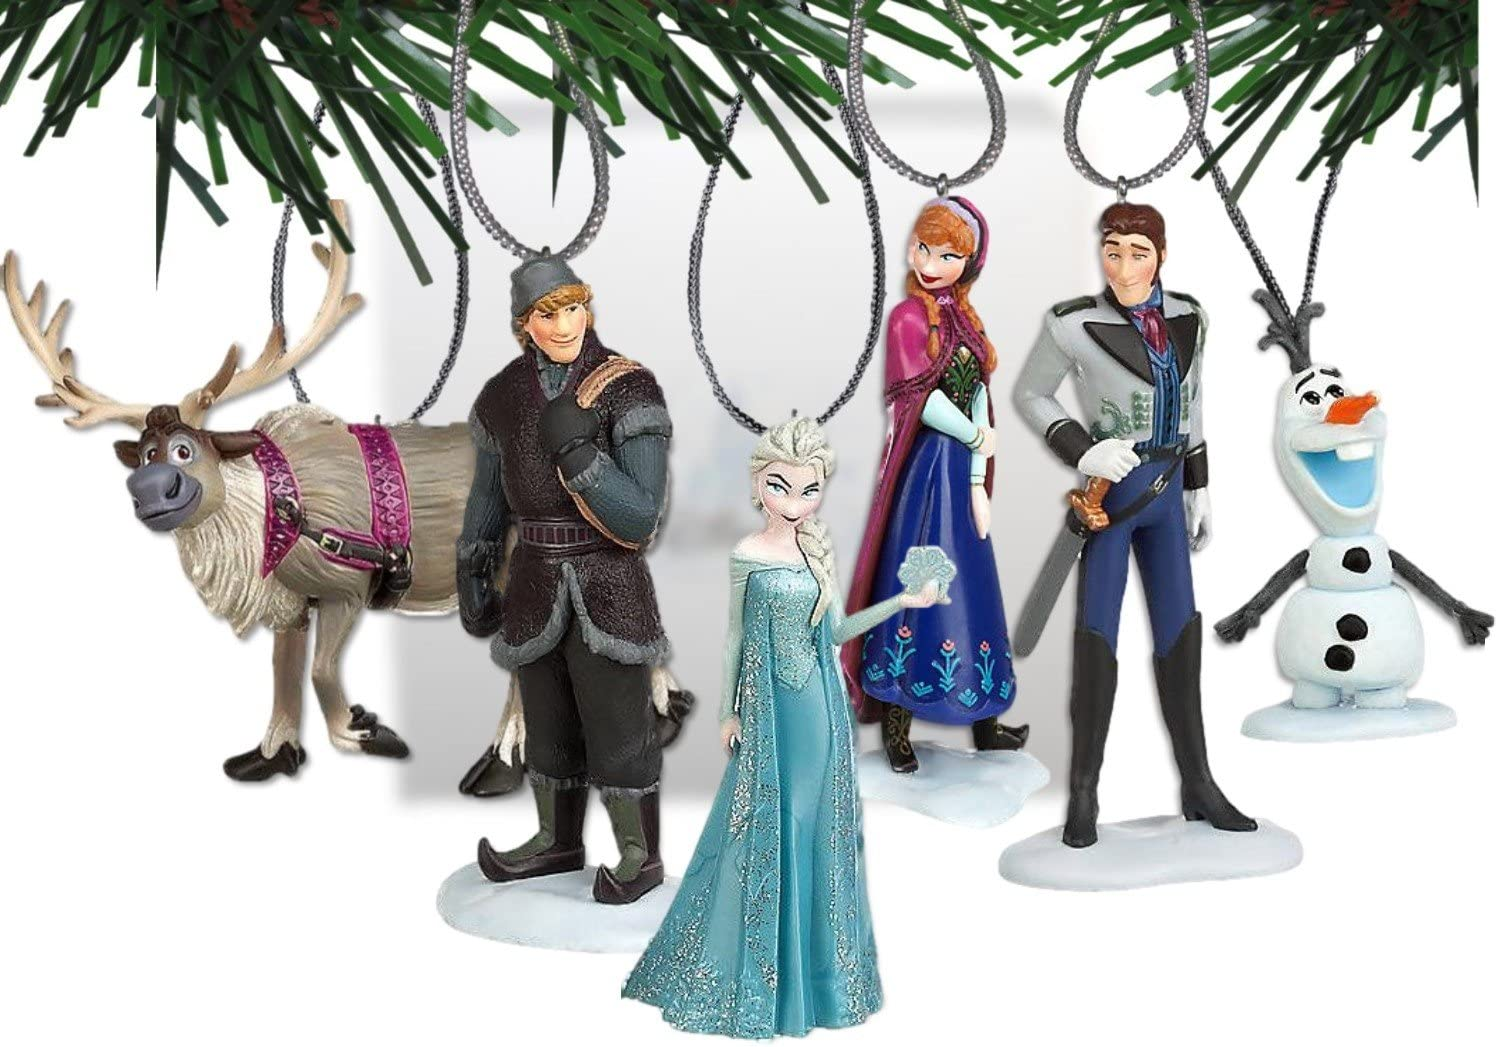 Disneys Frozen Holiday Ornament Set-  6  PVC Figure Ornaments Included - Limited Availability